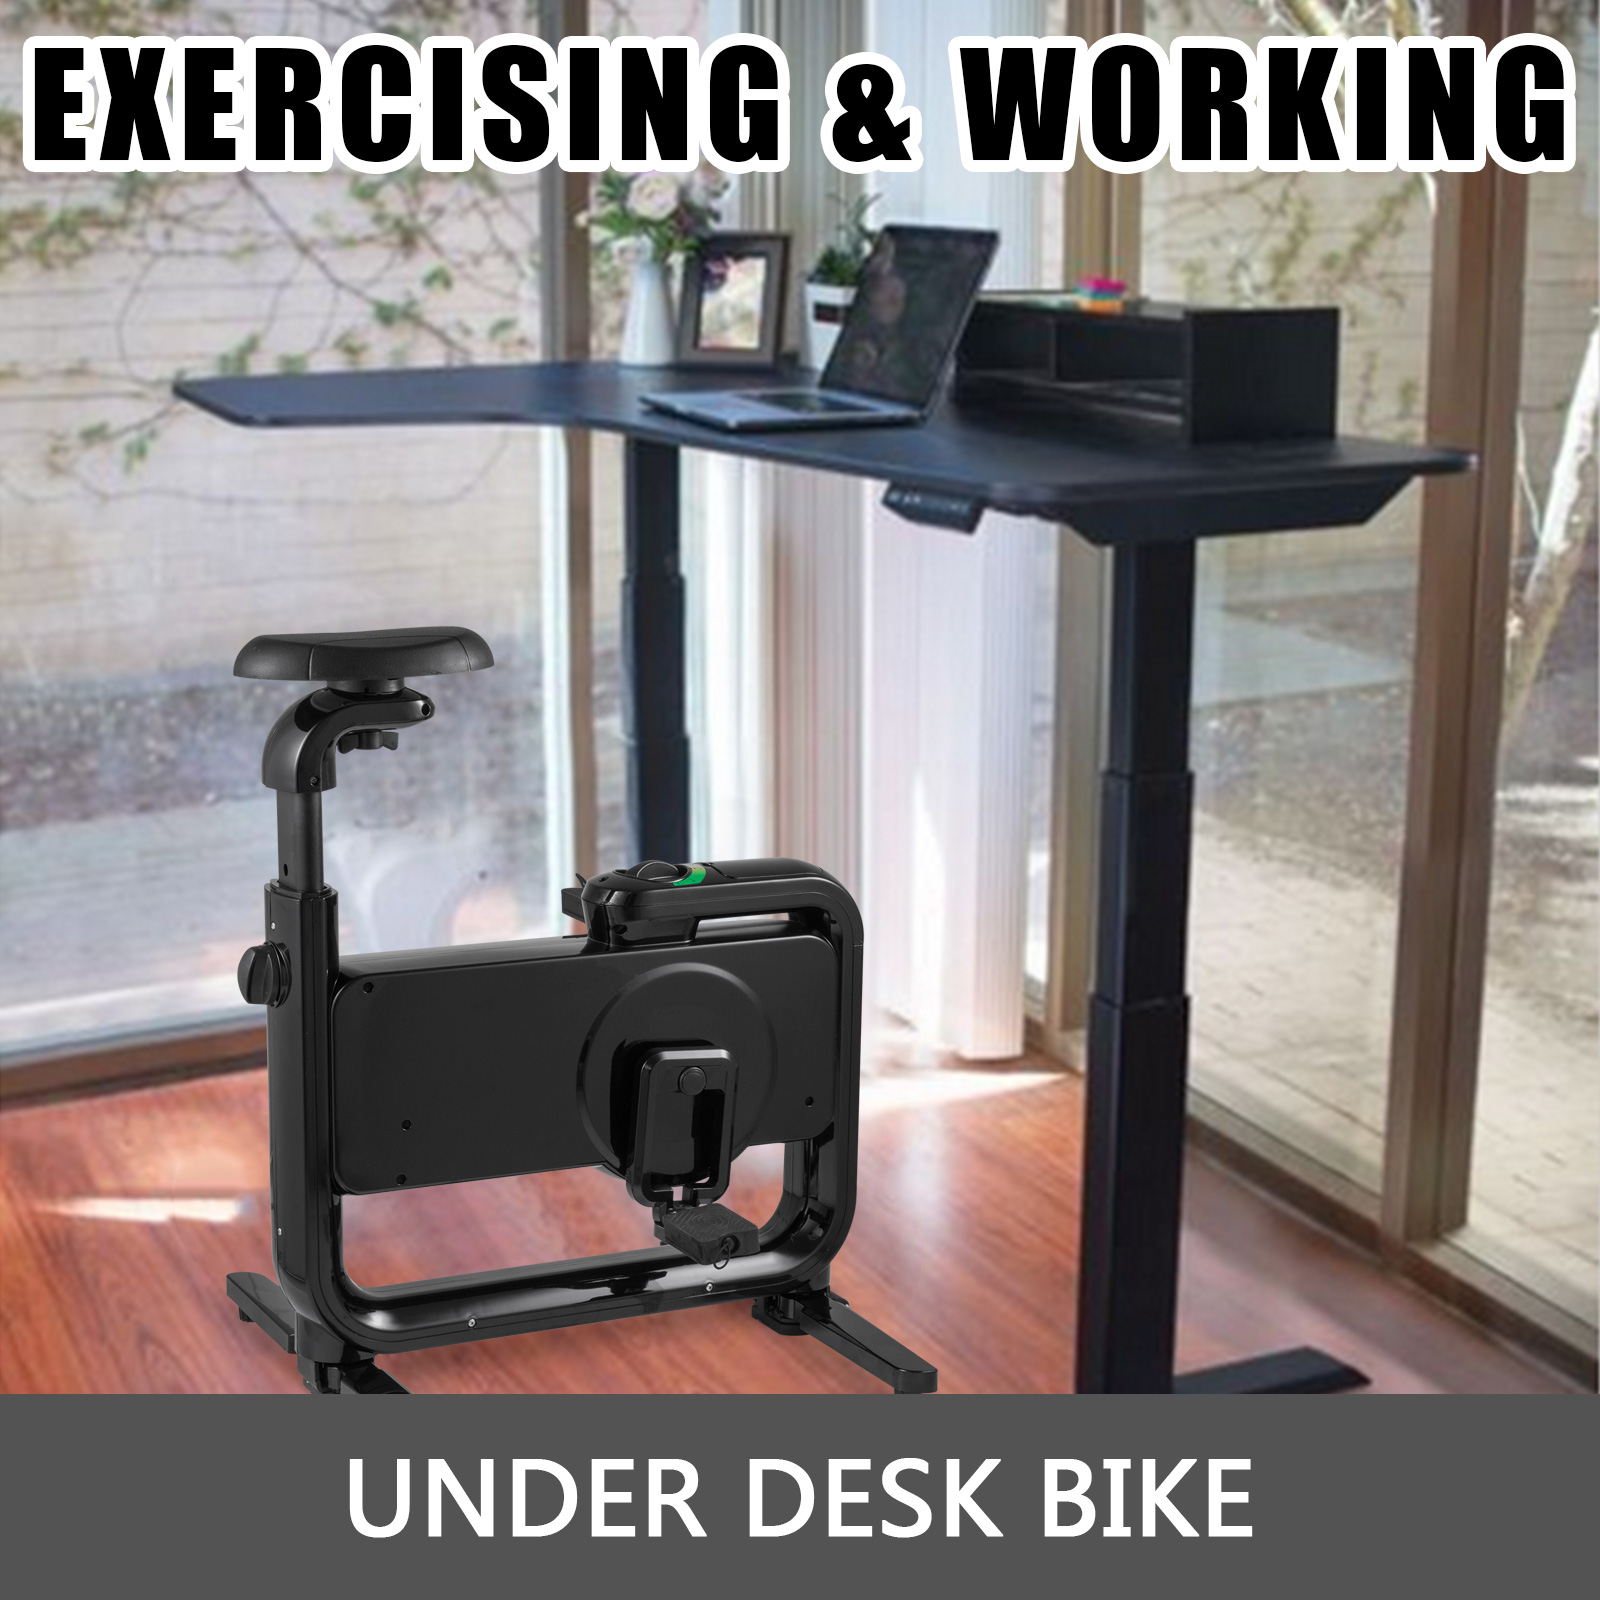 Multi-style-Magnetic-Exercise-Bike-office-Bicycle-under-Desk-Fitness-Cardio miniature 55